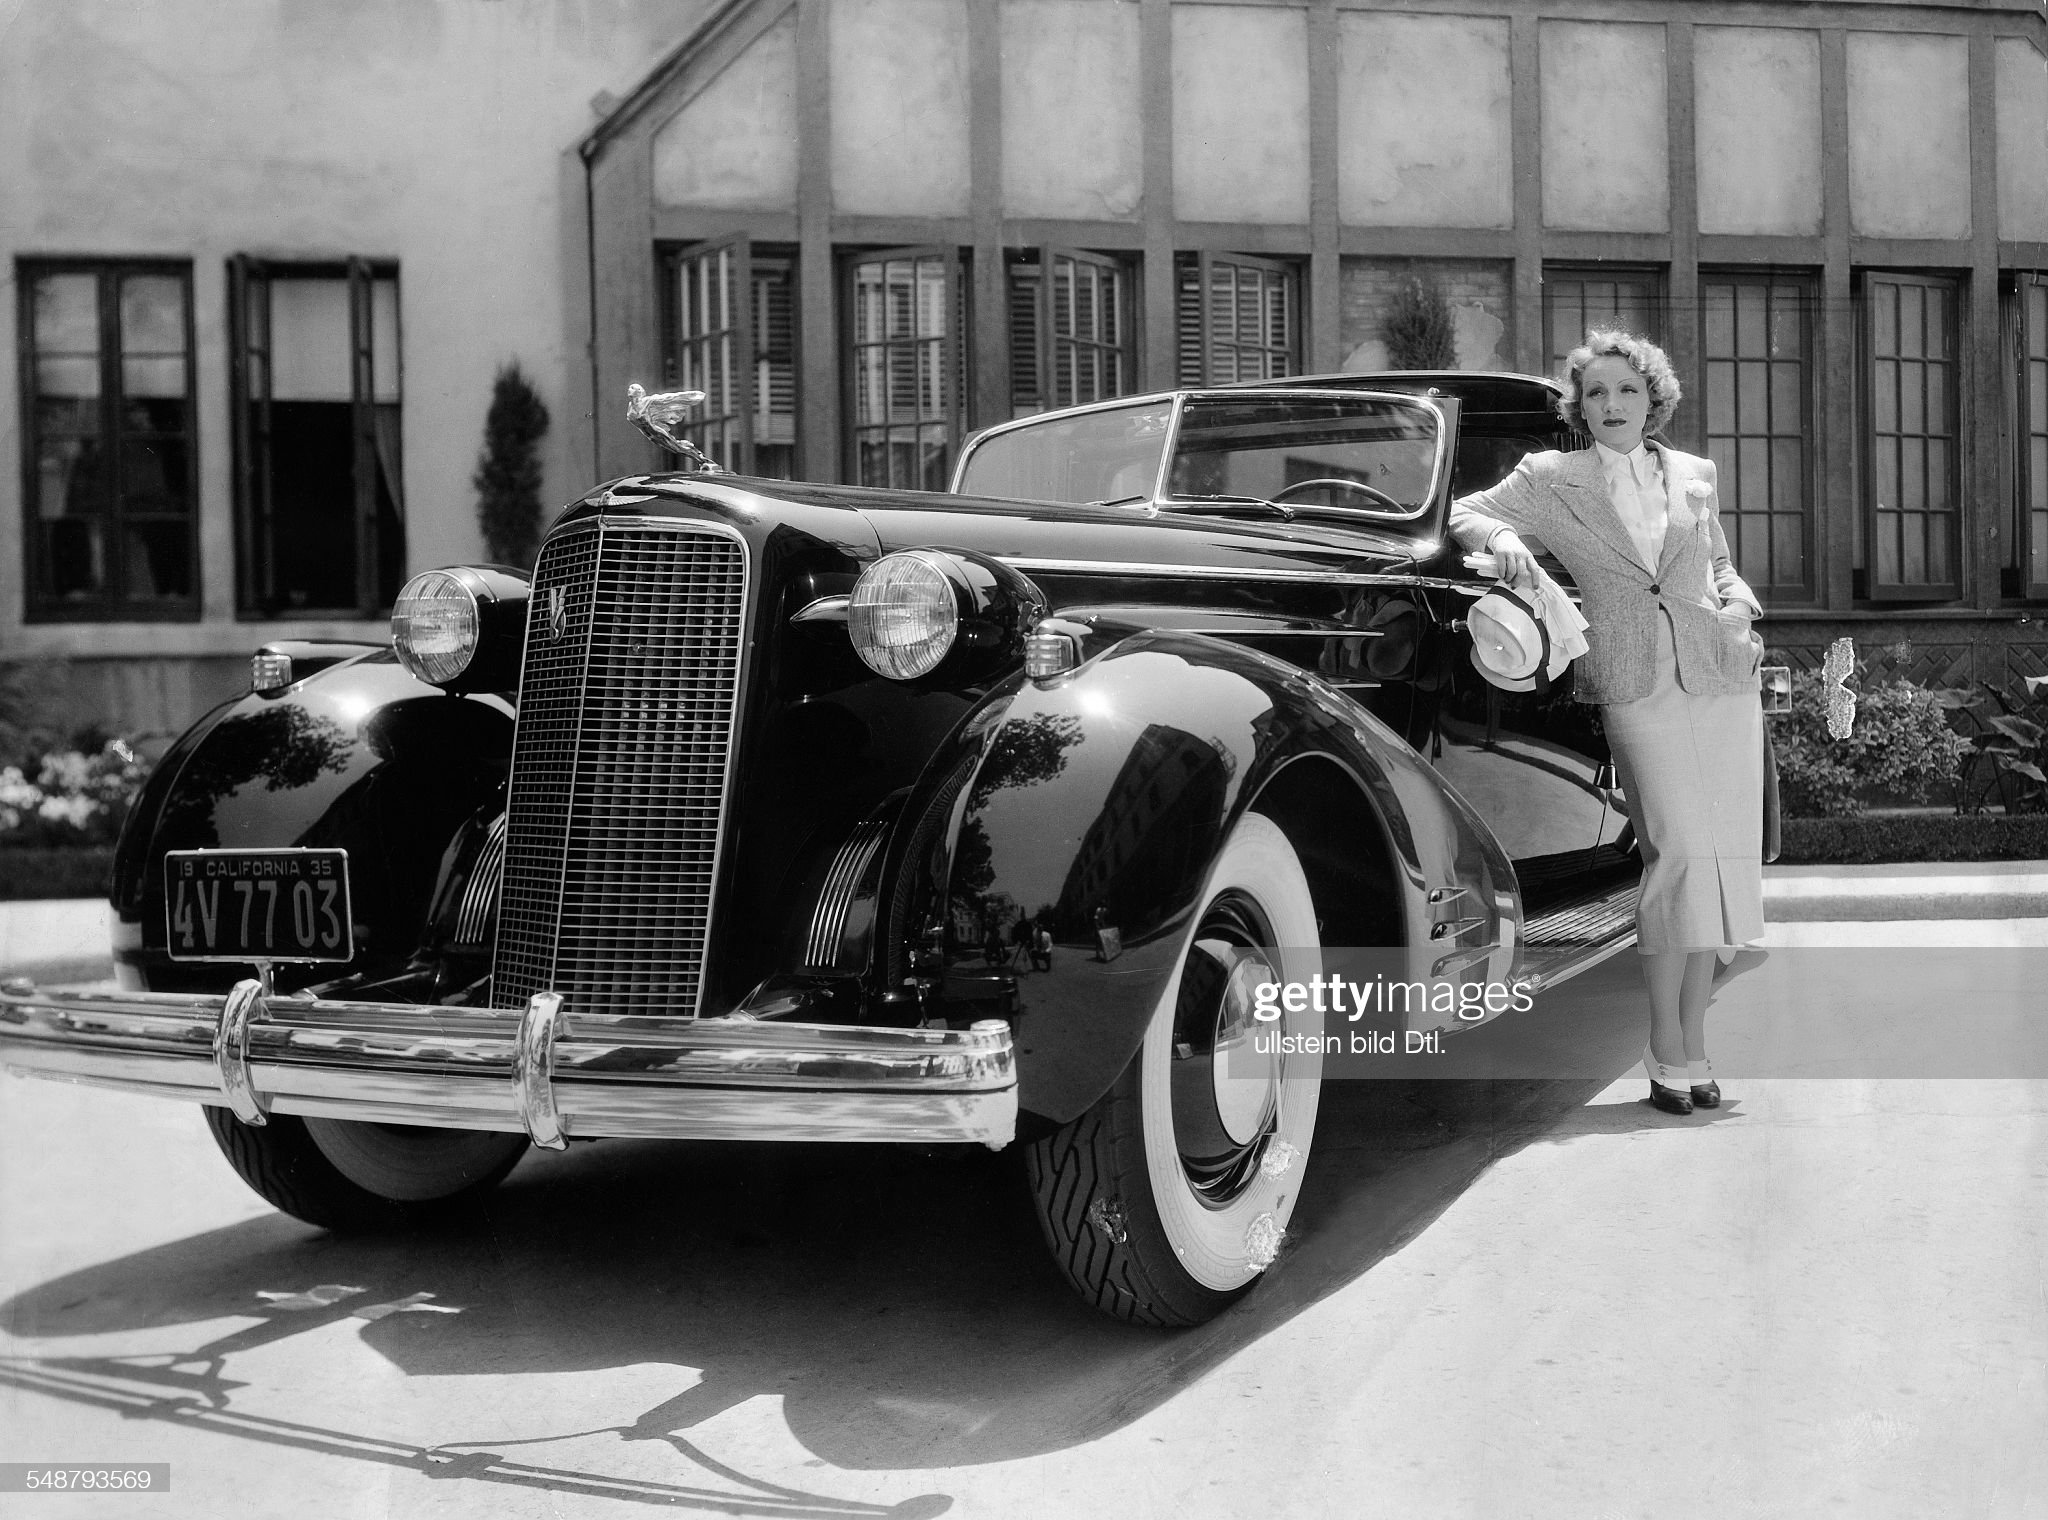 Dietrich, Marlene - Actress, Germany - *27.12.1901-06.05.1992+ with her car - a Rolls Royce - in front of the Paramount studio in Hollywood - 1932 - Vintage property of ullstein bild : News Photo